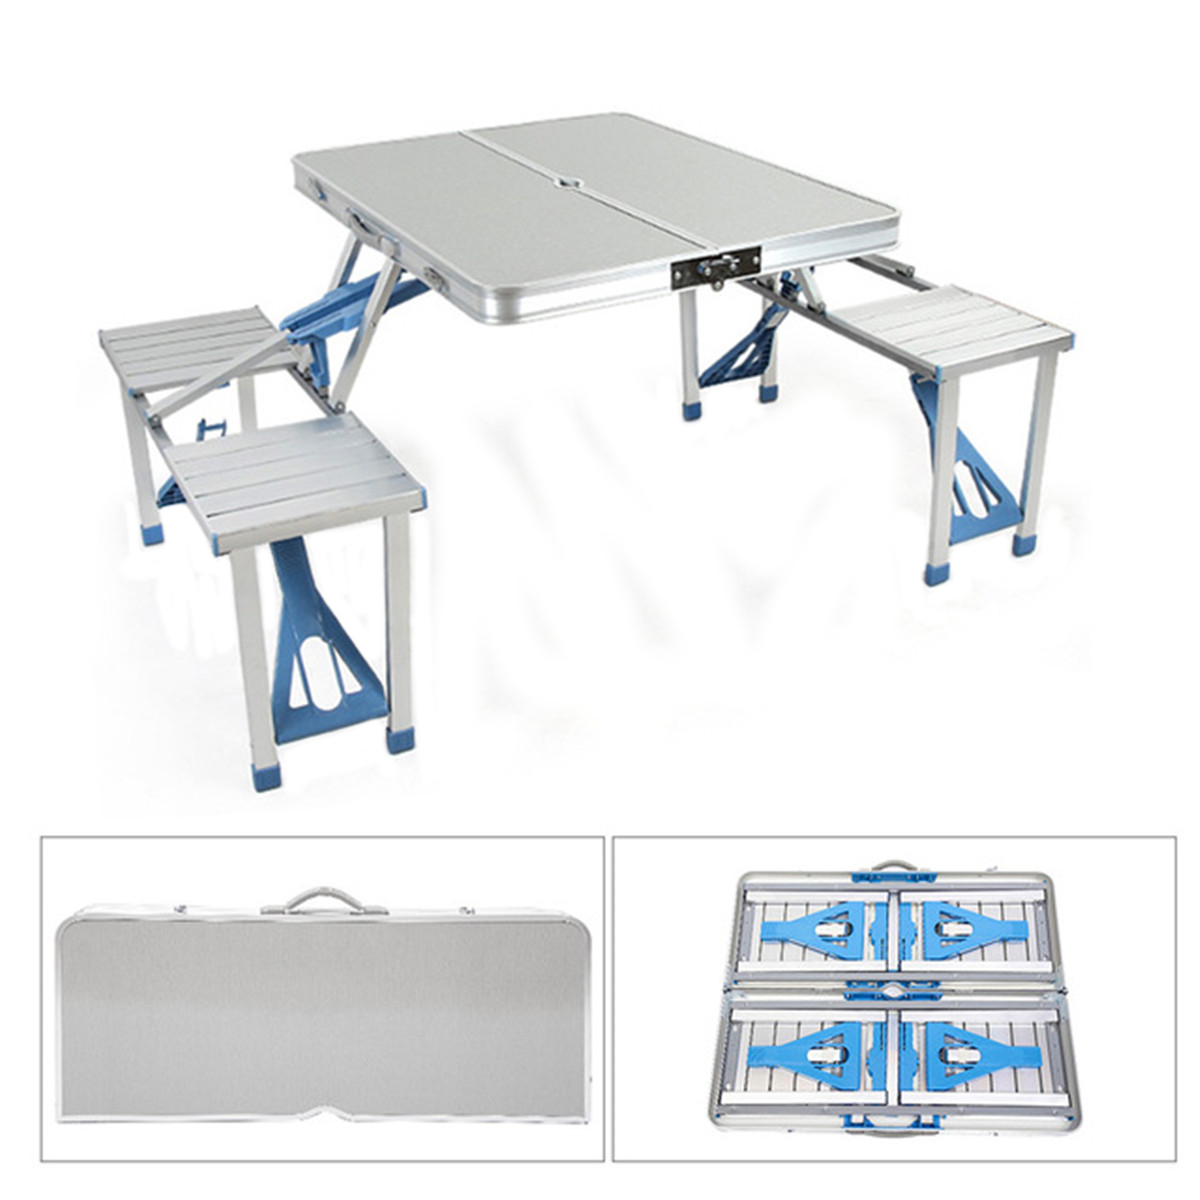 Aluminum Alloy Outdoor Portable Camping Picnic BBQ Folding Table Chair Stool Set